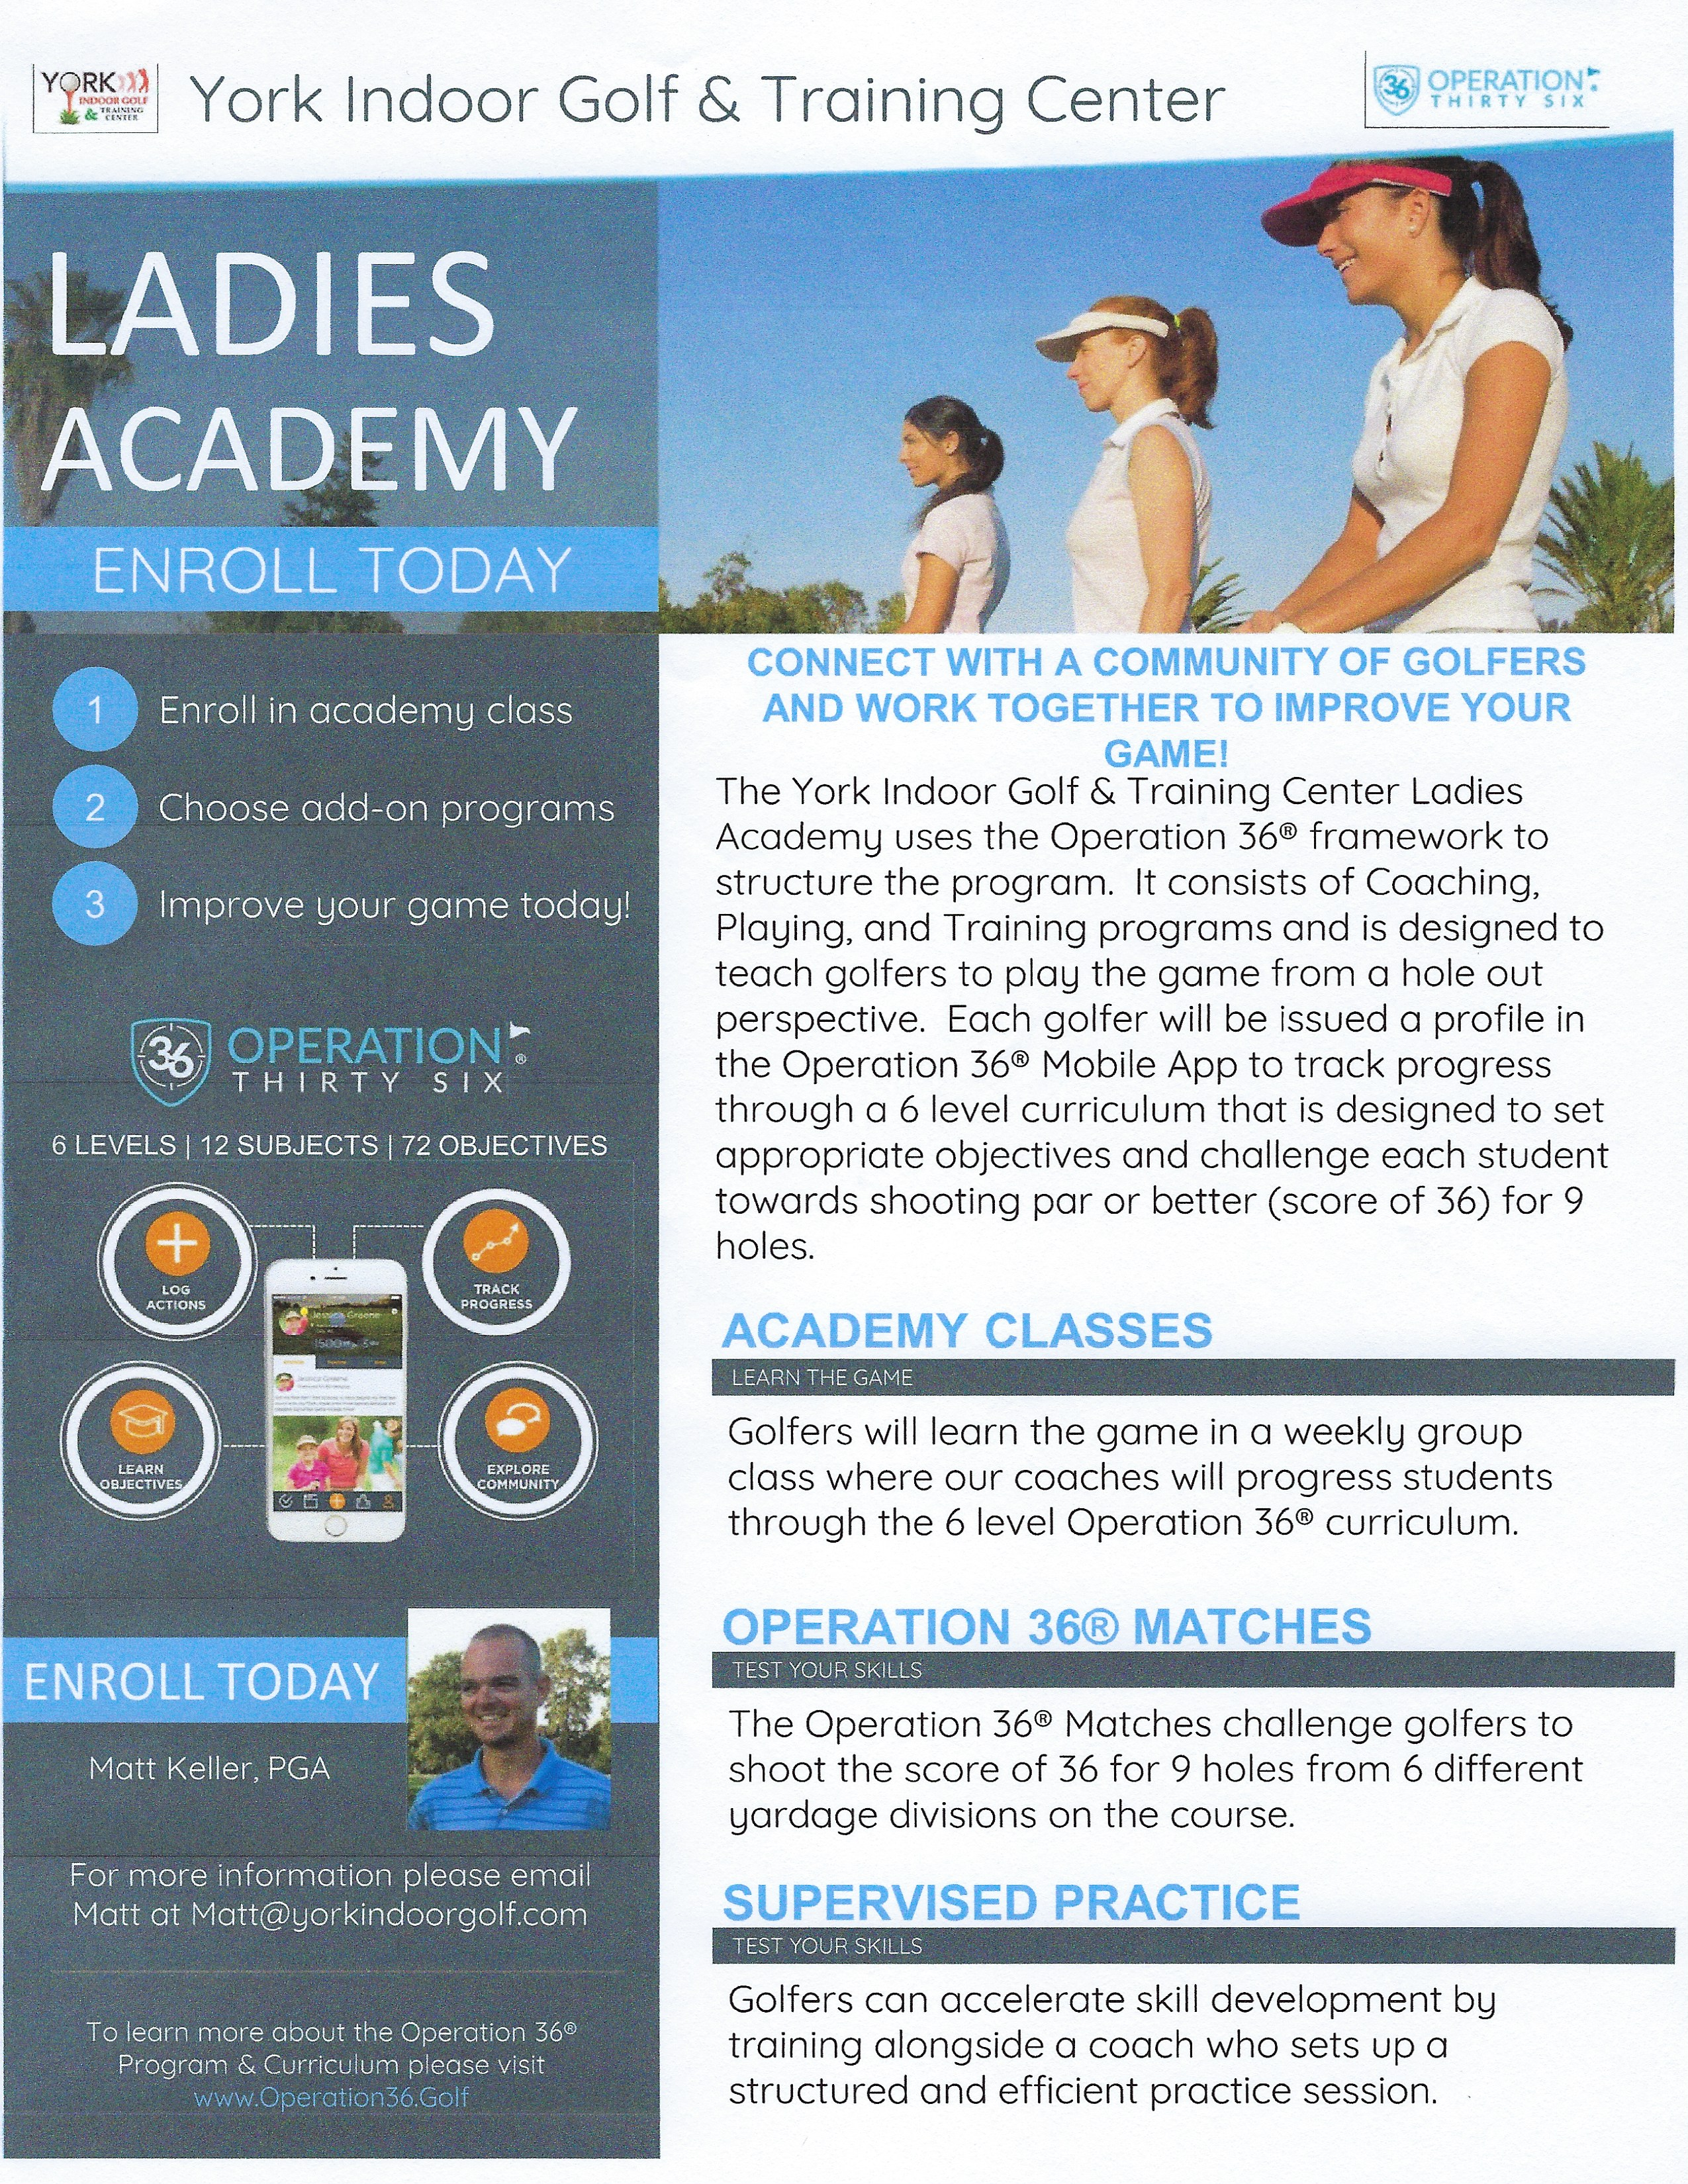 Ladies Academy Intro